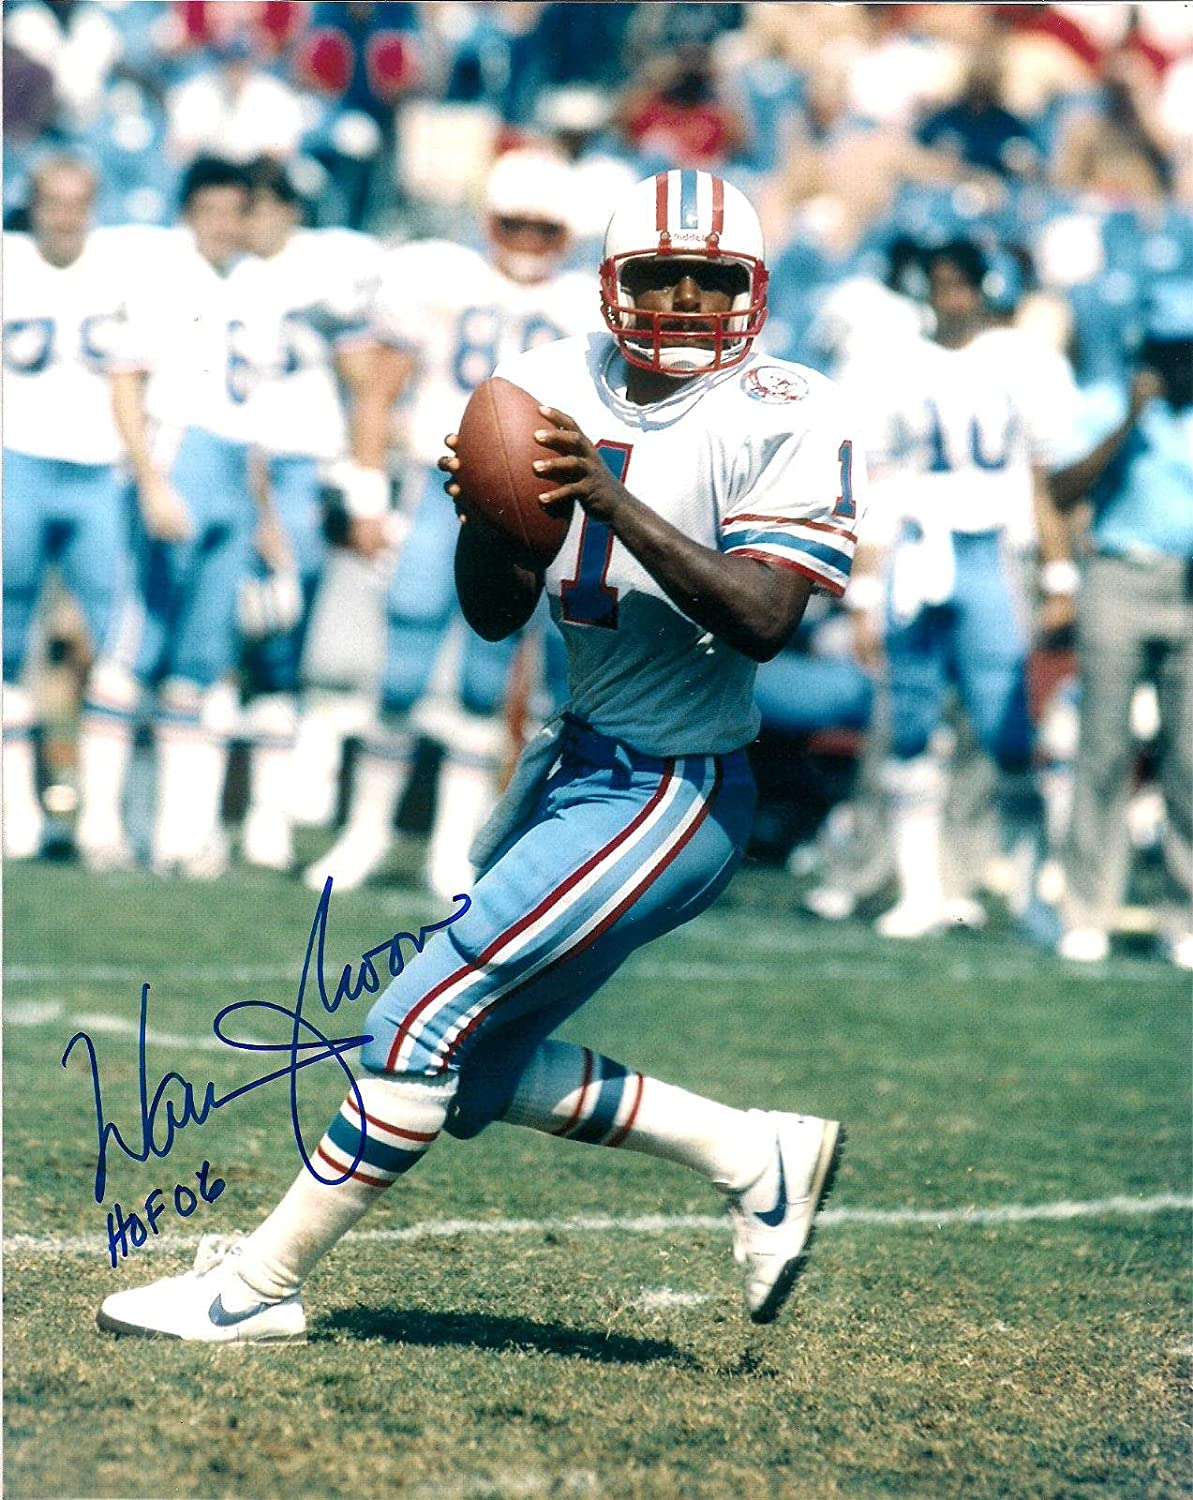 Warren Moon Houston Oilers Hof 06 Autographed Signed 8x10 Photo W/coa - Autographed NFL Photos